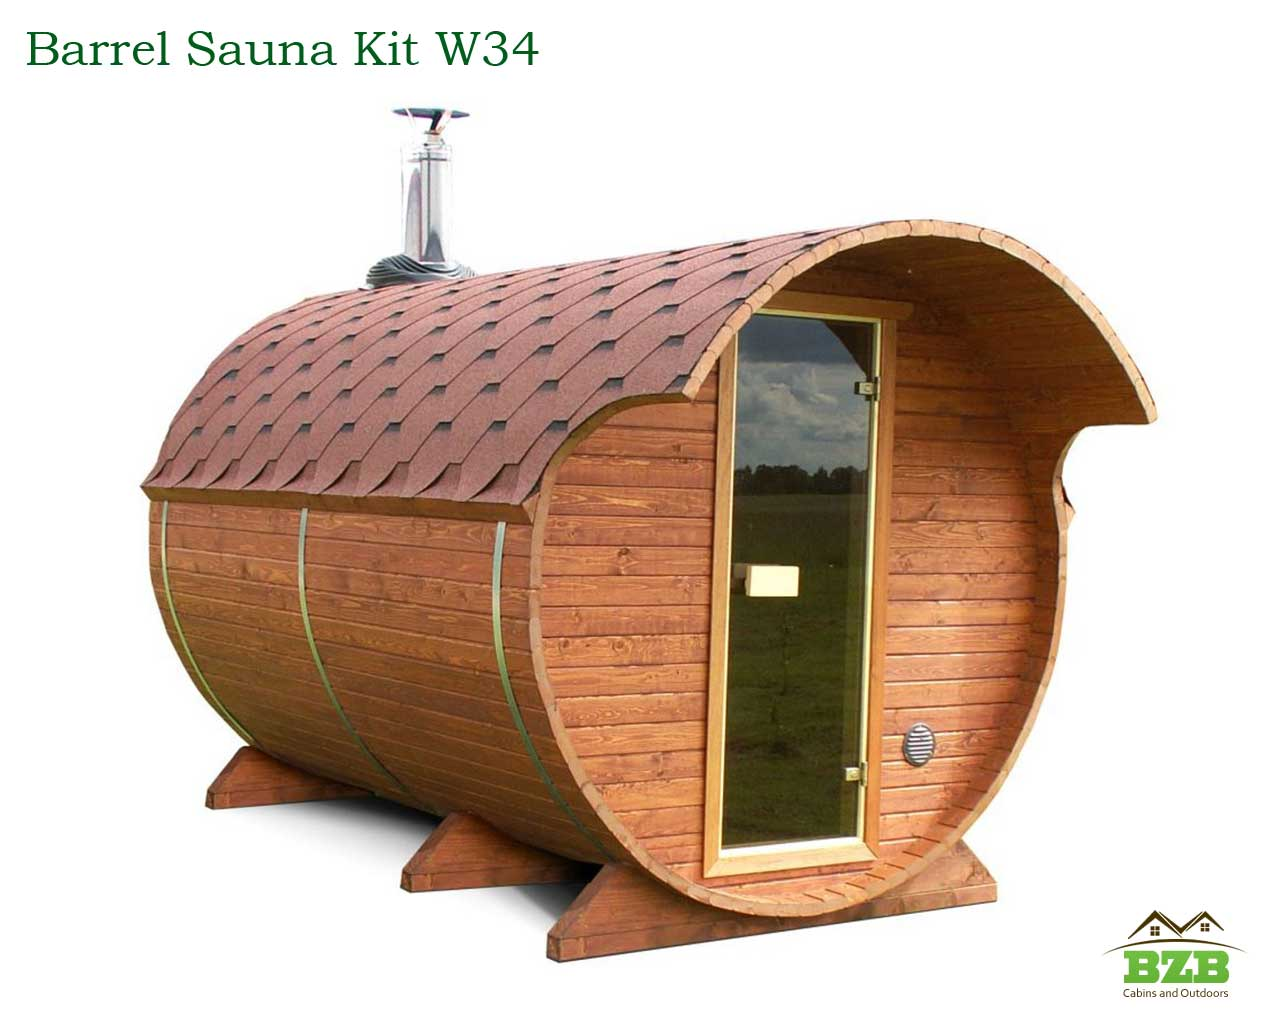 w34 bzb barrel sauna kit